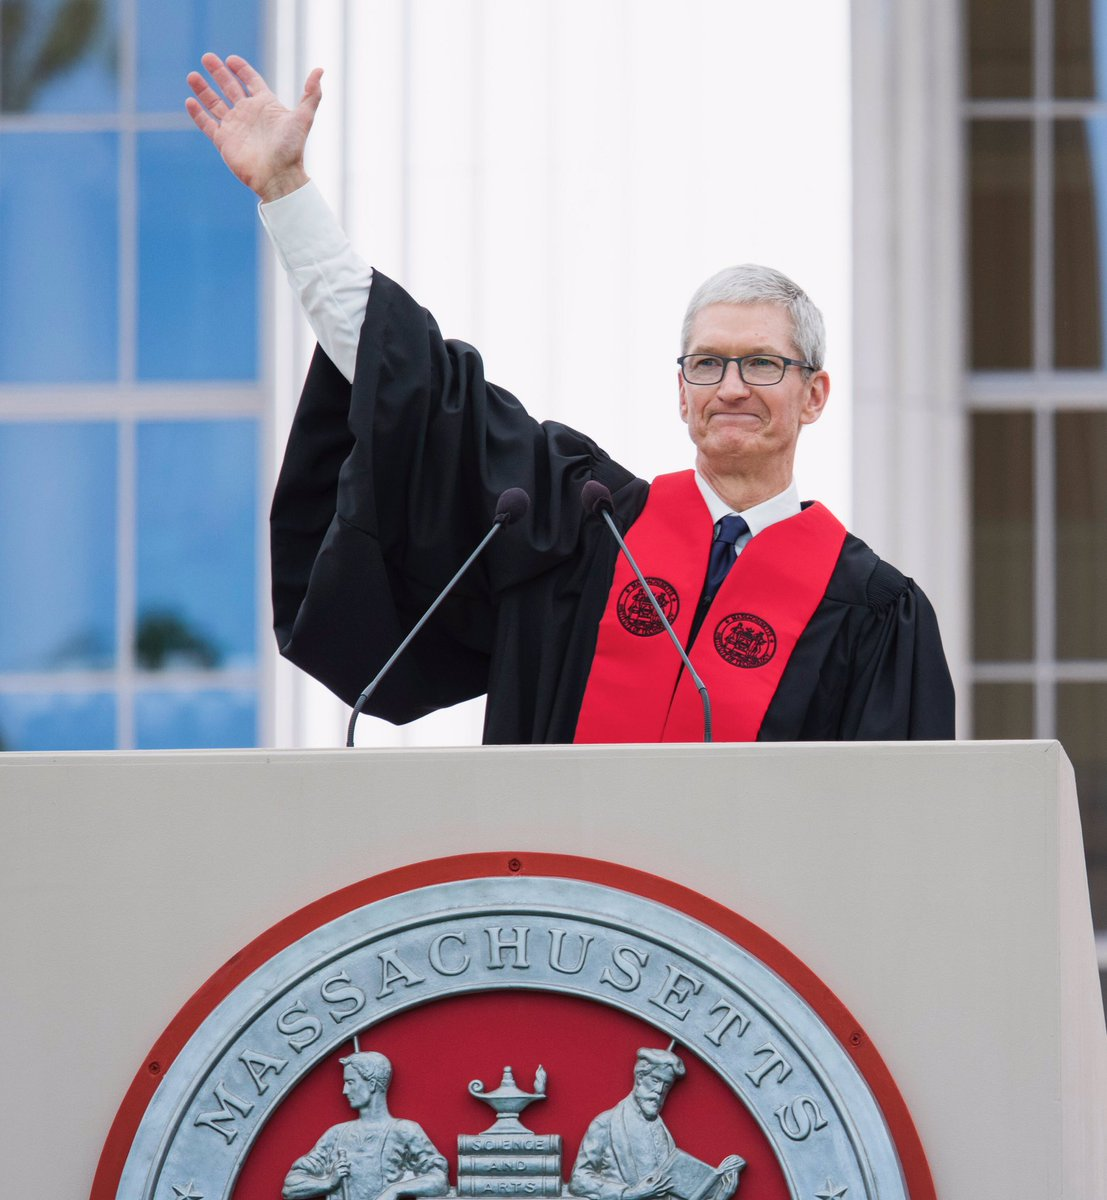 Congratulations, @MIT class of 2017! Today, all of humanity has good cause for hope.